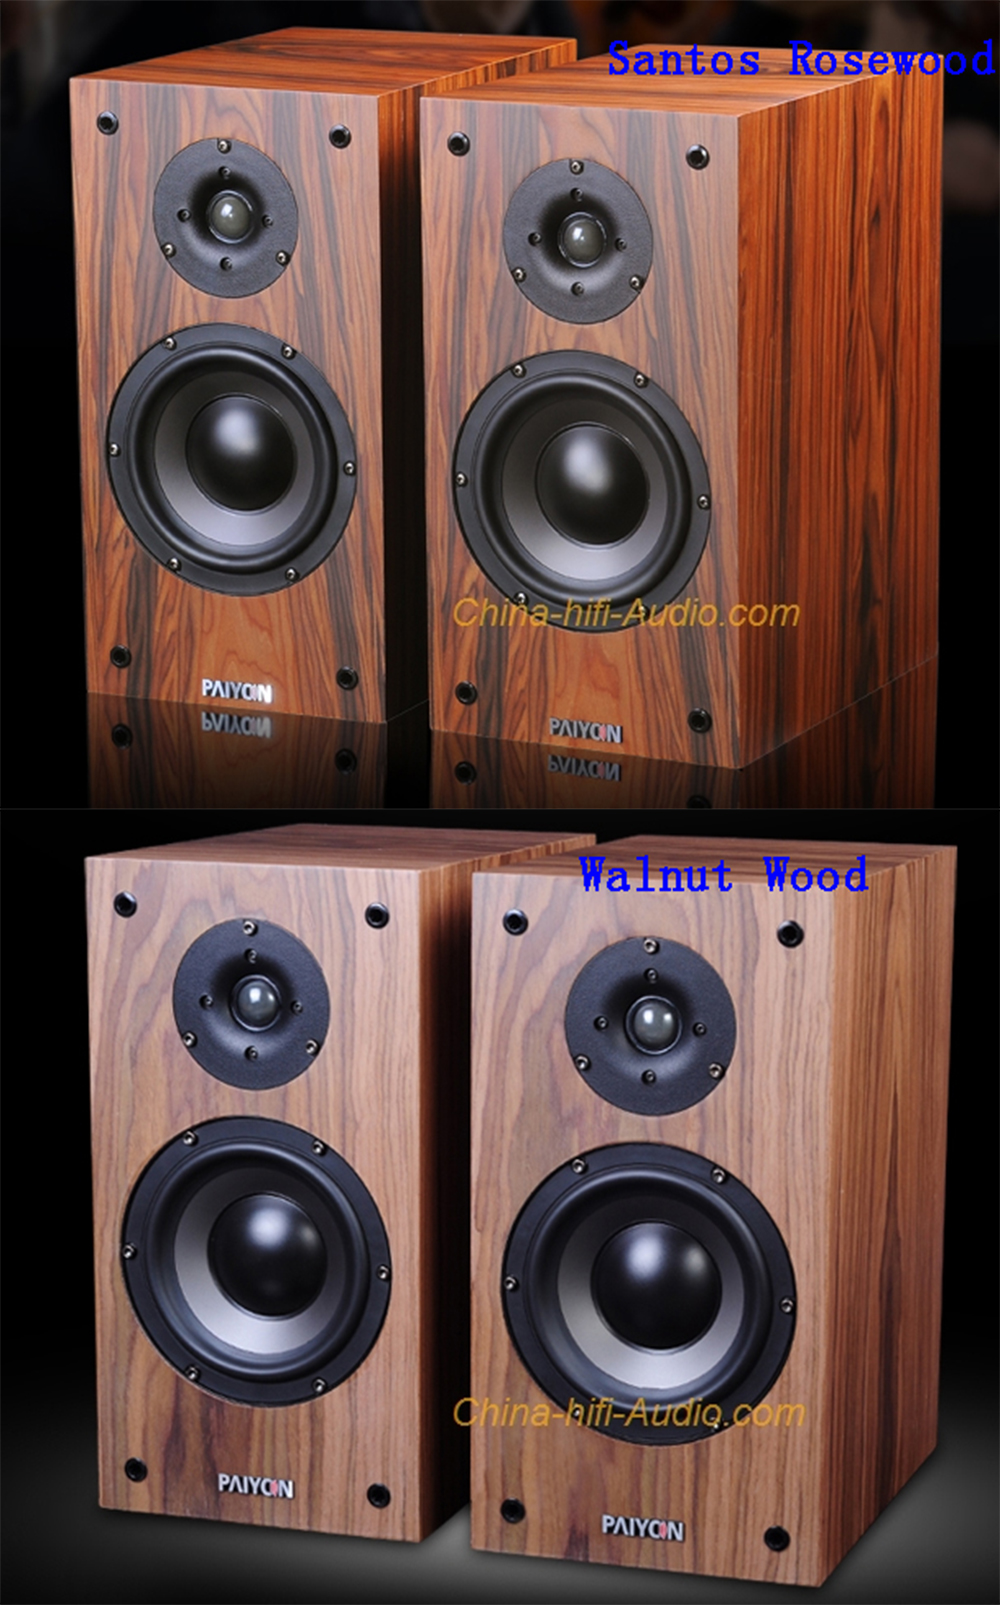 PAIYON P4-2.0 Bookshelf Loudspeaker Audiophile Passive Hi-Fi Audio Speakers Pair